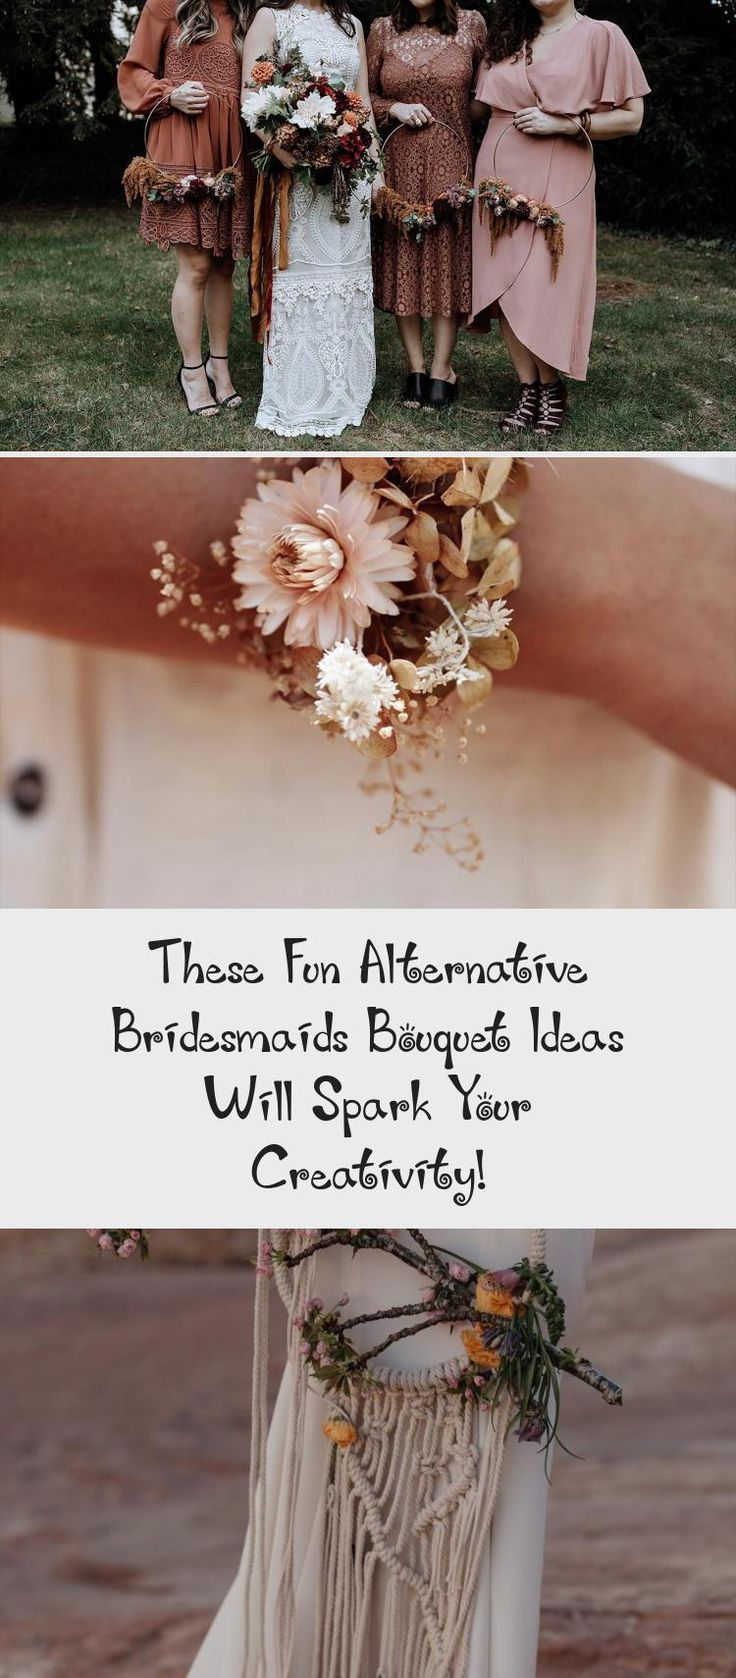 These Fun Alternative Bridesmaids Bouquet Ideas Will Spark Your Creativity! - Green Wedding Shoes #BurgundyBridesmaidDresses #BlushBridesmaidDresses #BridesmaidDresses2019 #BridesmaidDressesPurple #BridesmaidDressesWinter